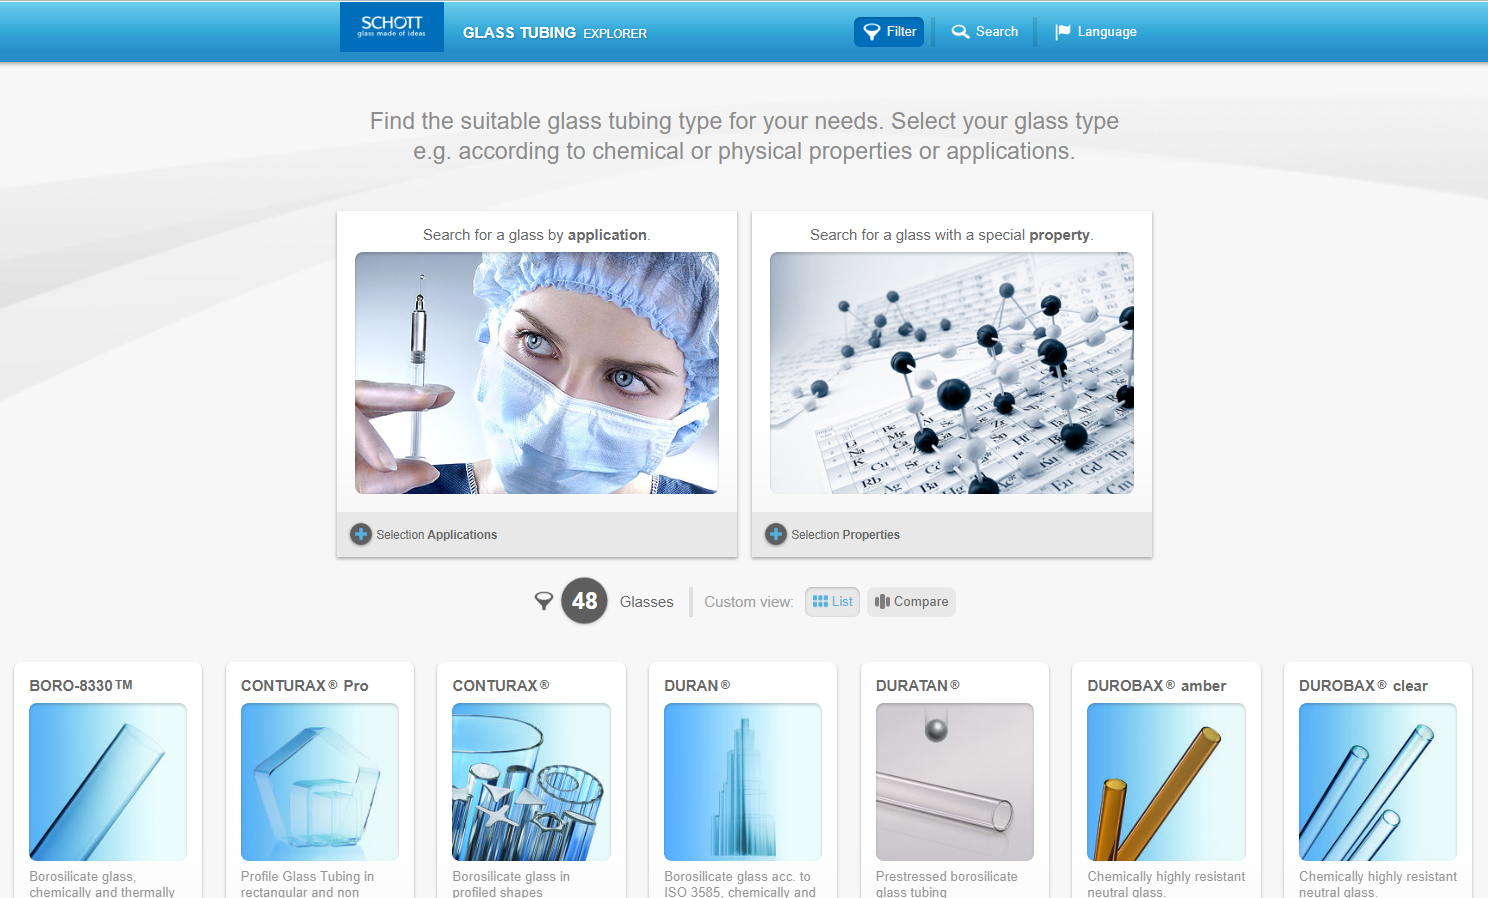 Schott also offers multiple search functions for their products and present  brochures and datasheets  for more detailed information on its products.